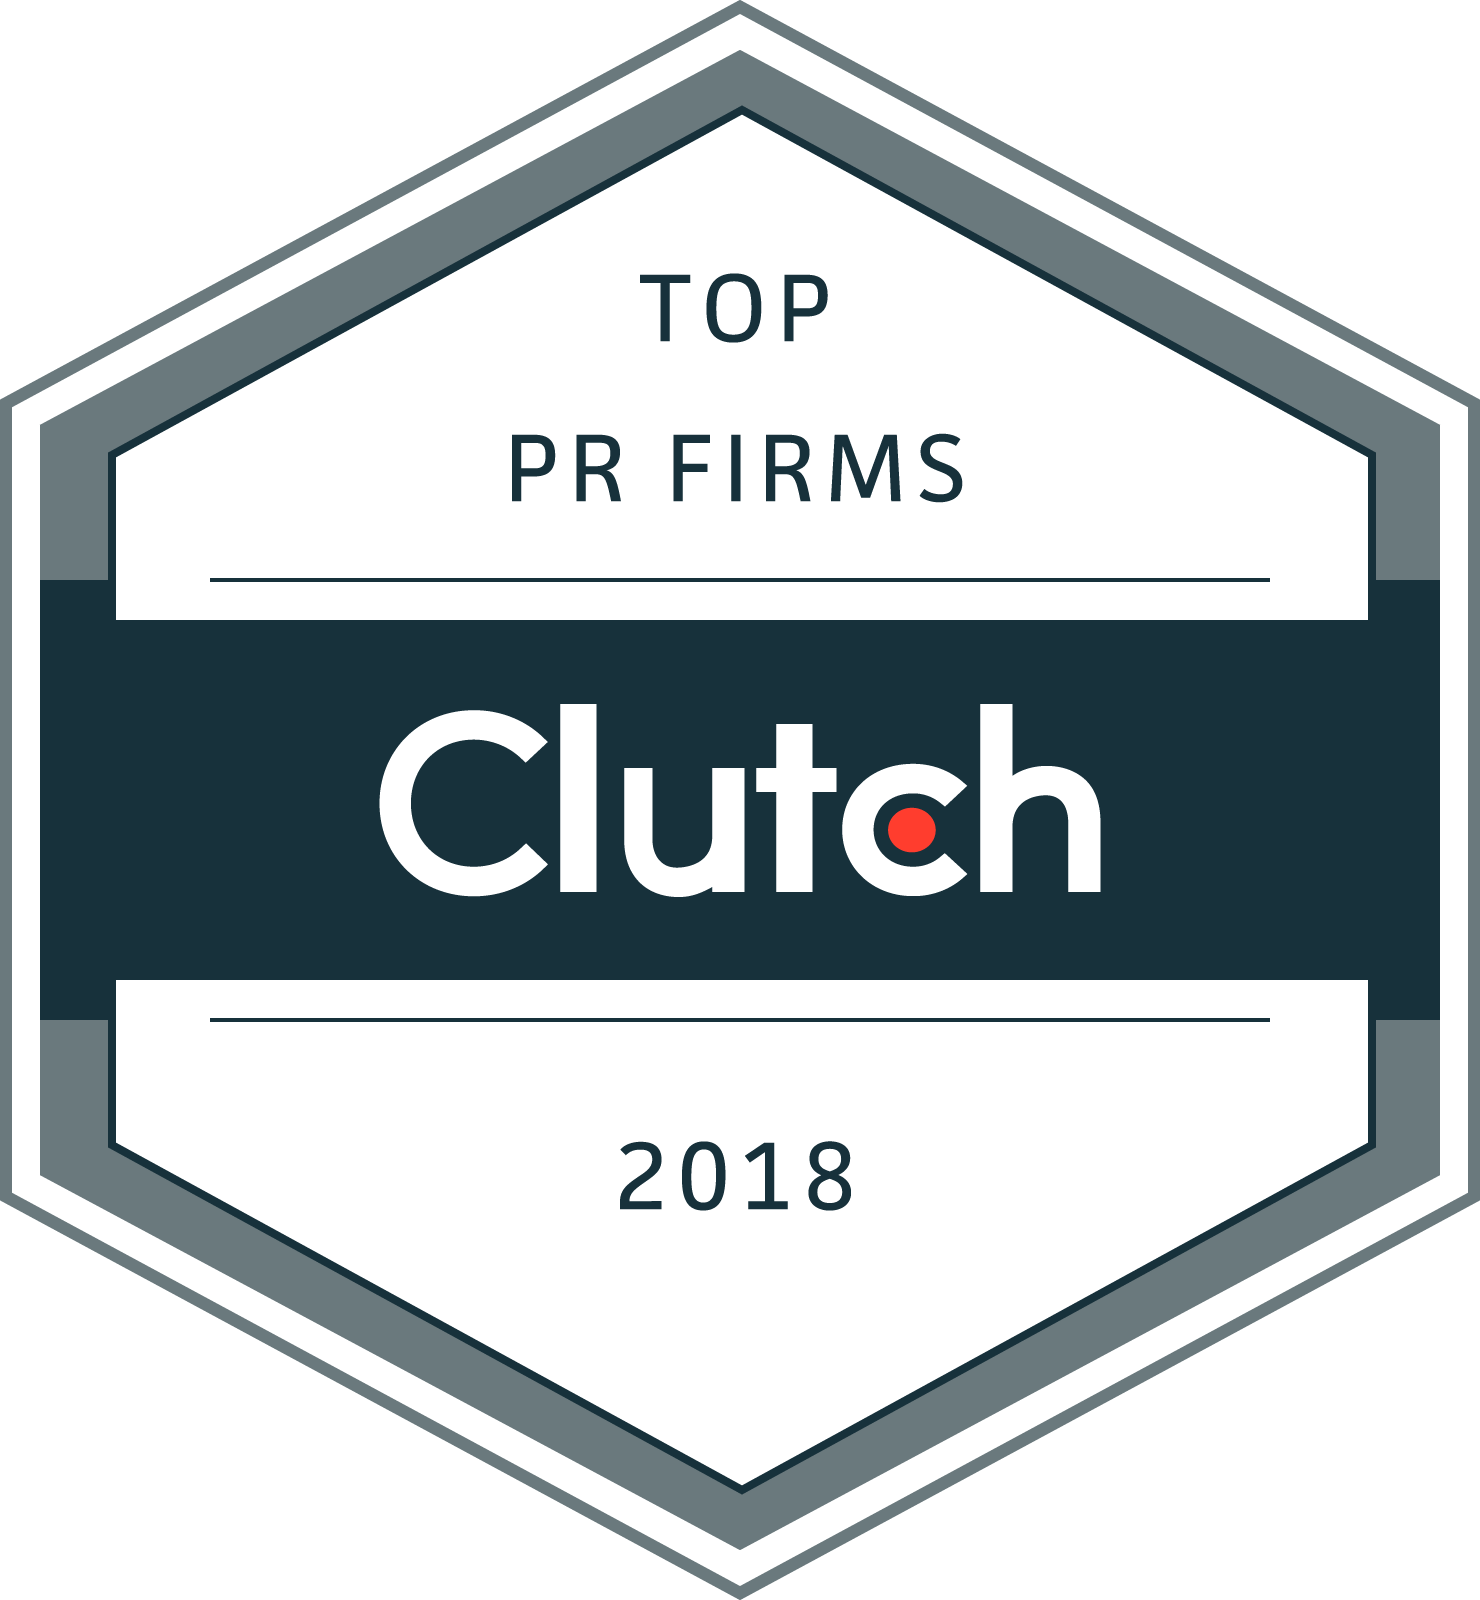 Clutch Top Public Relations Agencies 2018 | BIGfish Communications